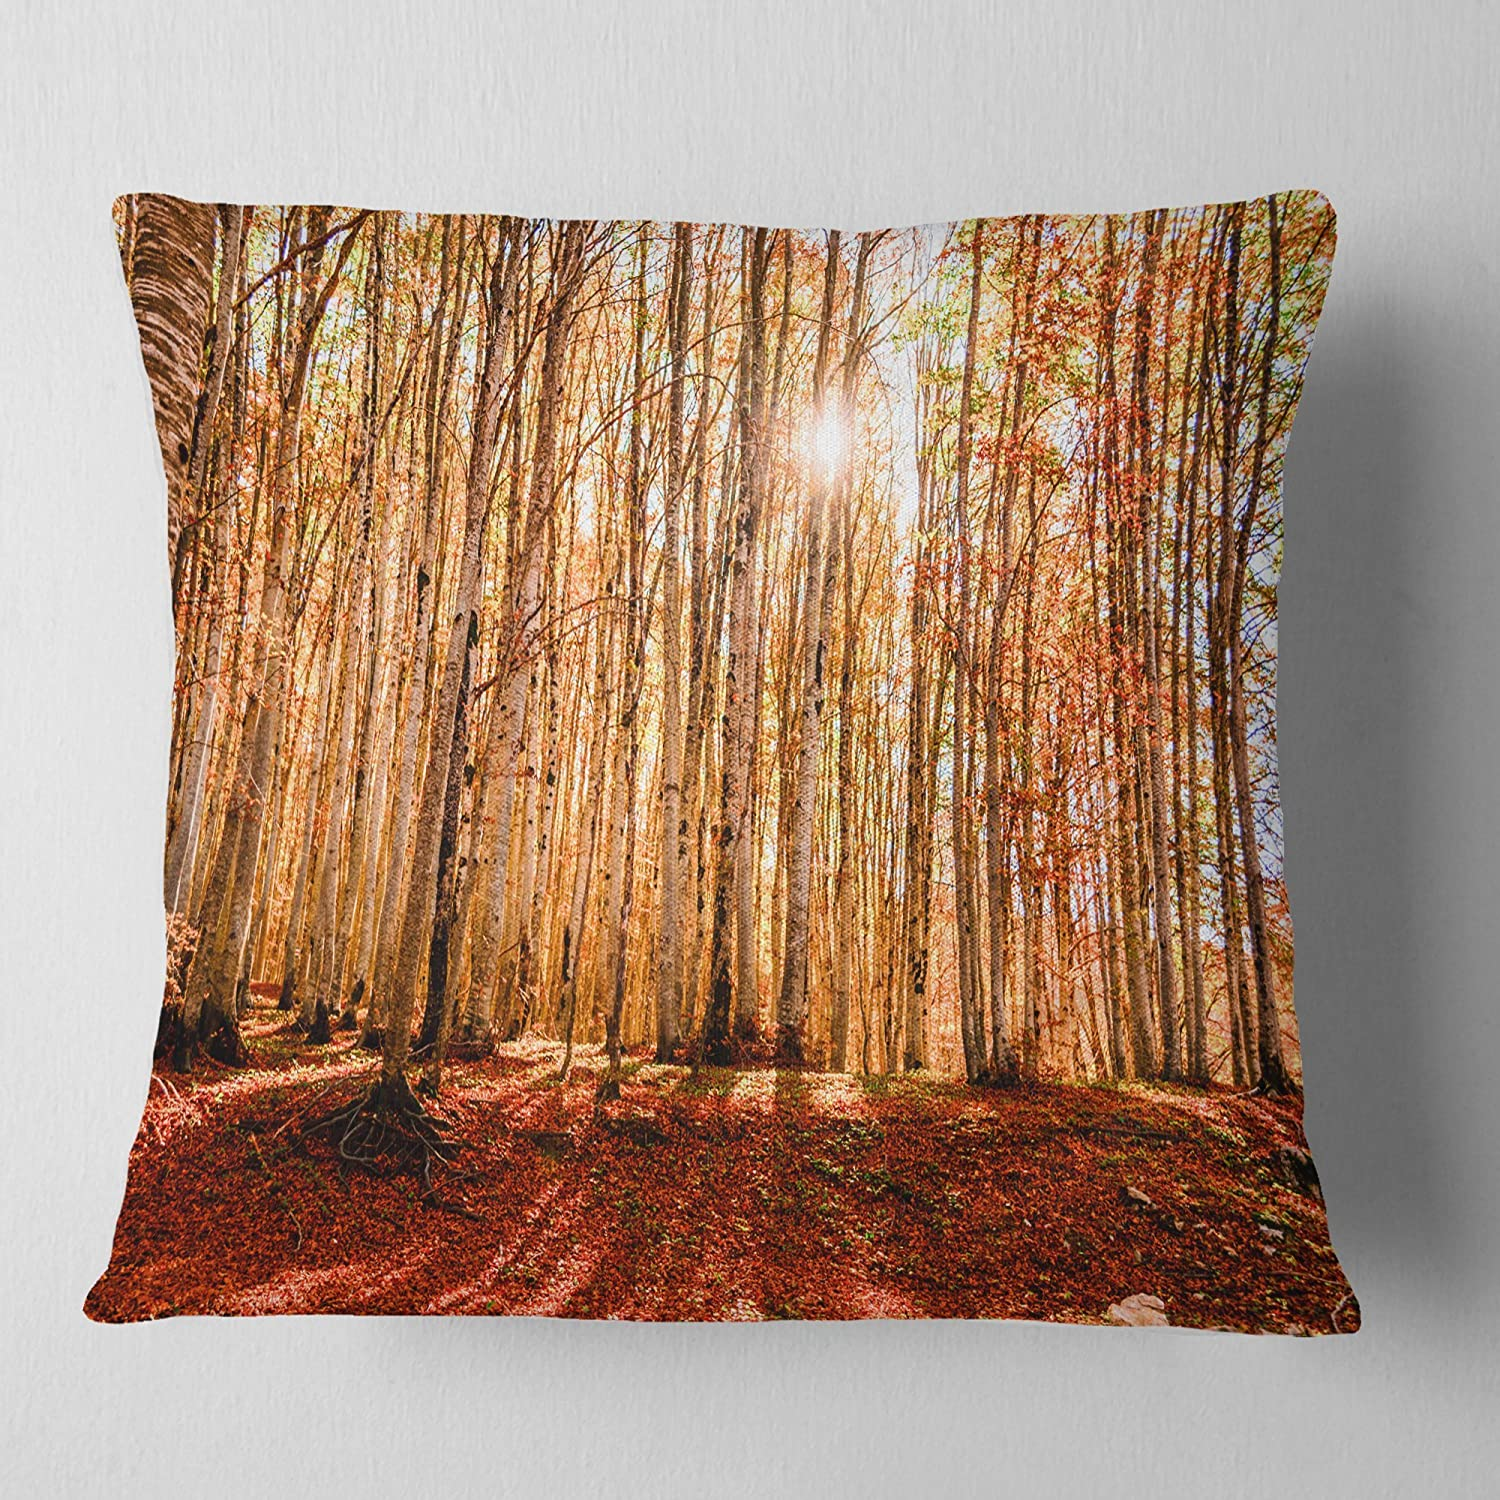 Designart CU13940-18-18 Bright Sun Over Thick Fall Modern Forest Cushion Cover for Living Room, Sofa Throw Pillow 18 in. x 18 in. in, Insert Printed On Both Side